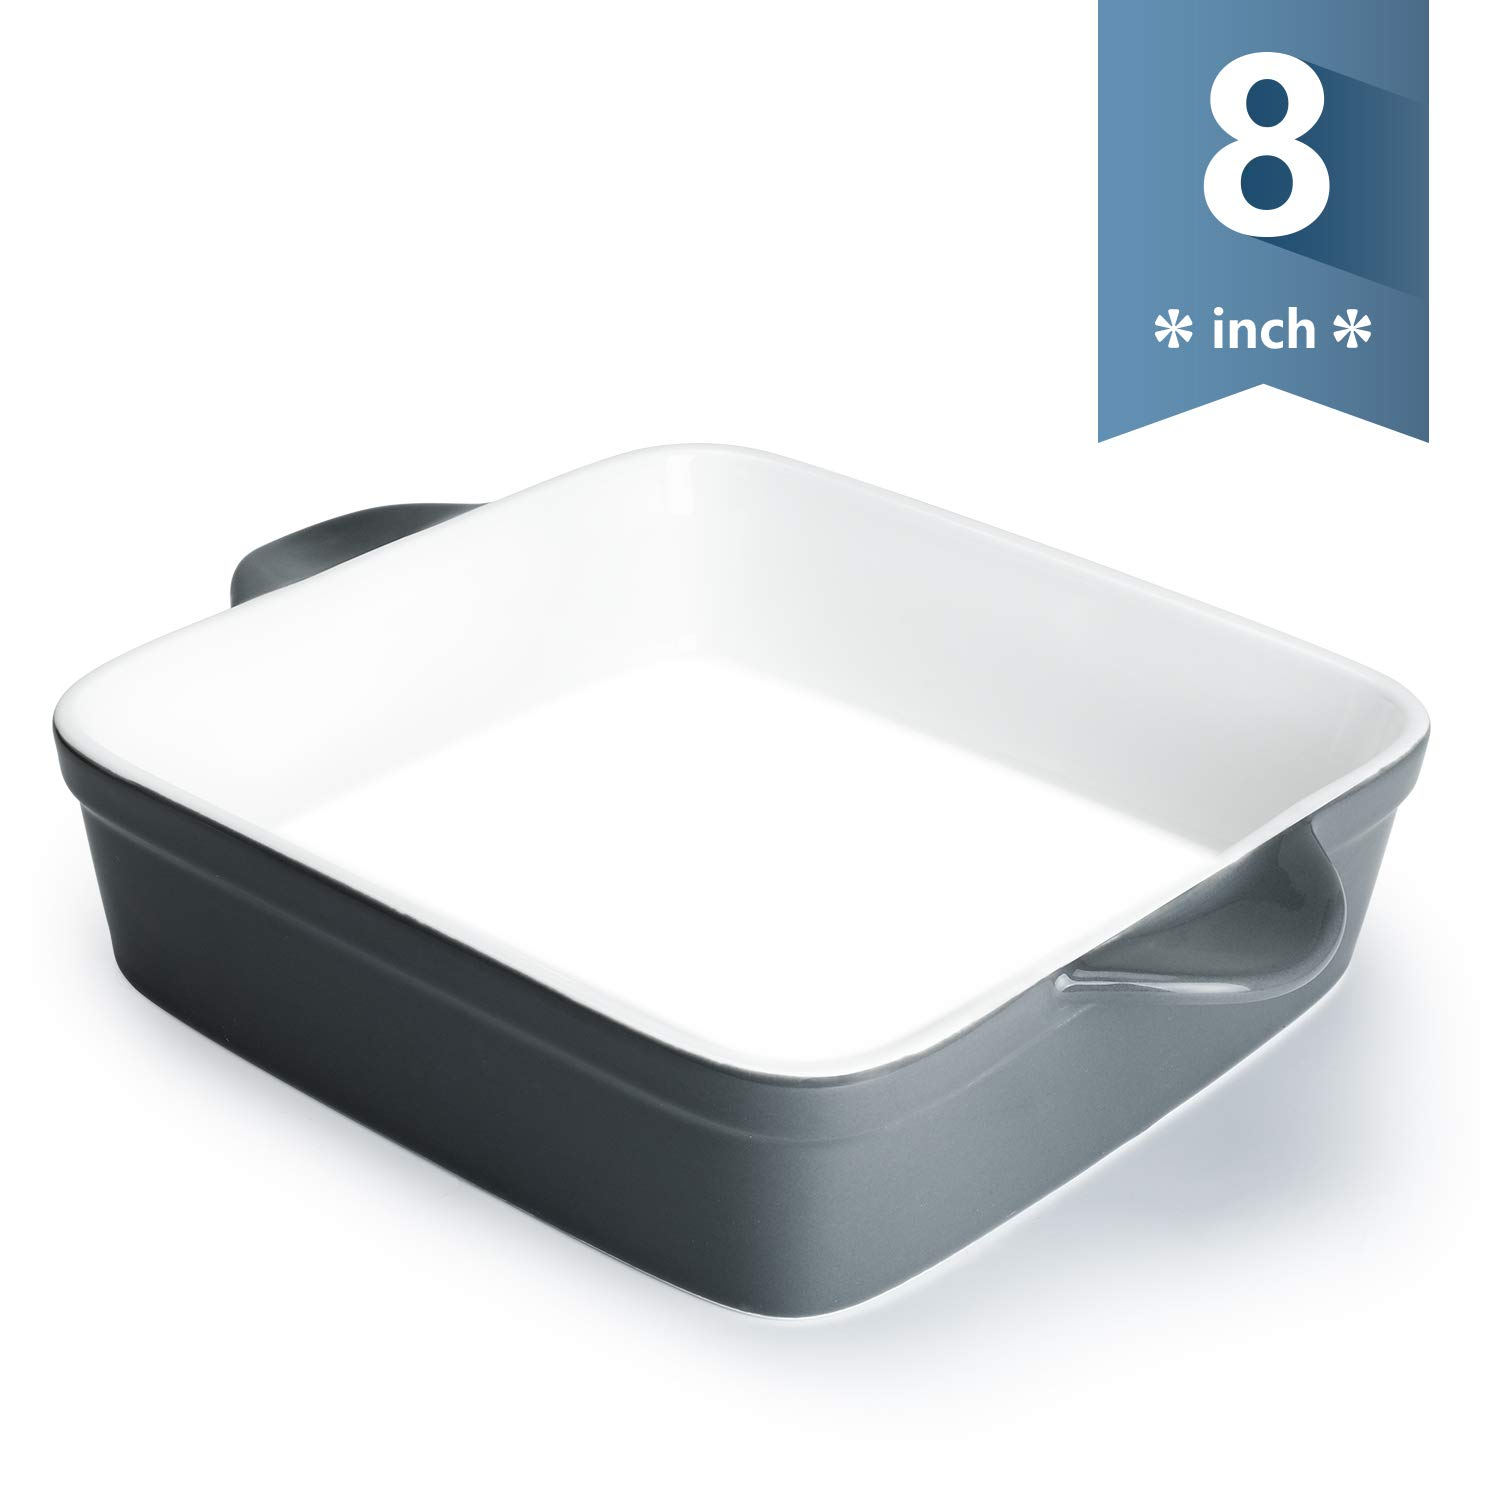 Sweese 514.113 Porcelain Baking Dish, 8 x 8 inch Baker, Square Brownie Pan with Double Handle, Grey